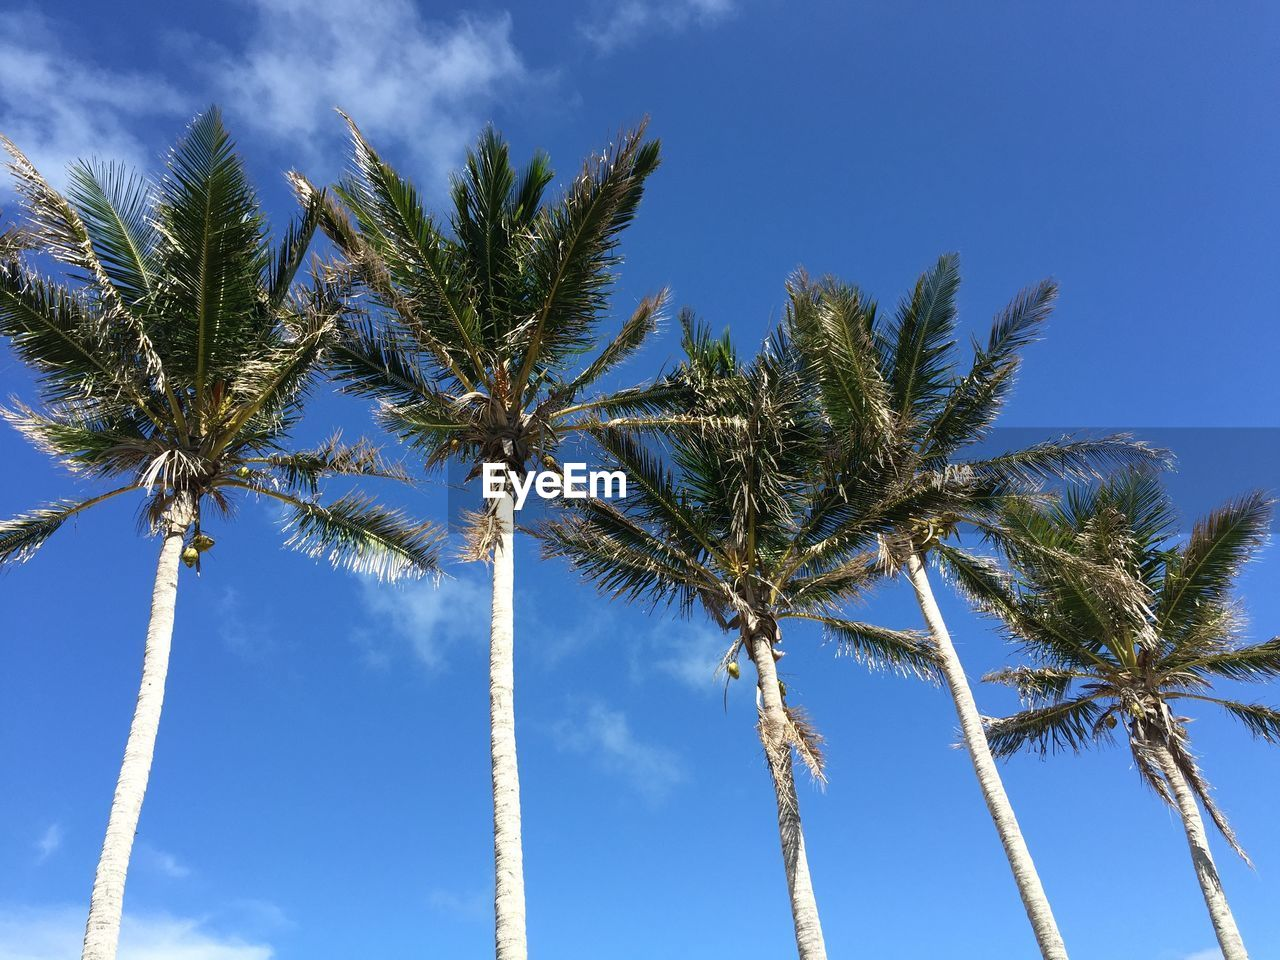 sky, tree, palm tree, plant, tropical climate, growth, low angle view, cloud - sky, nature, blue, day, tree trunk, no people, trunk, beauty in nature, tall - high, coconut palm tree, tranquility, sunlight, tropical tree, outdoors, palm leaf, treelined